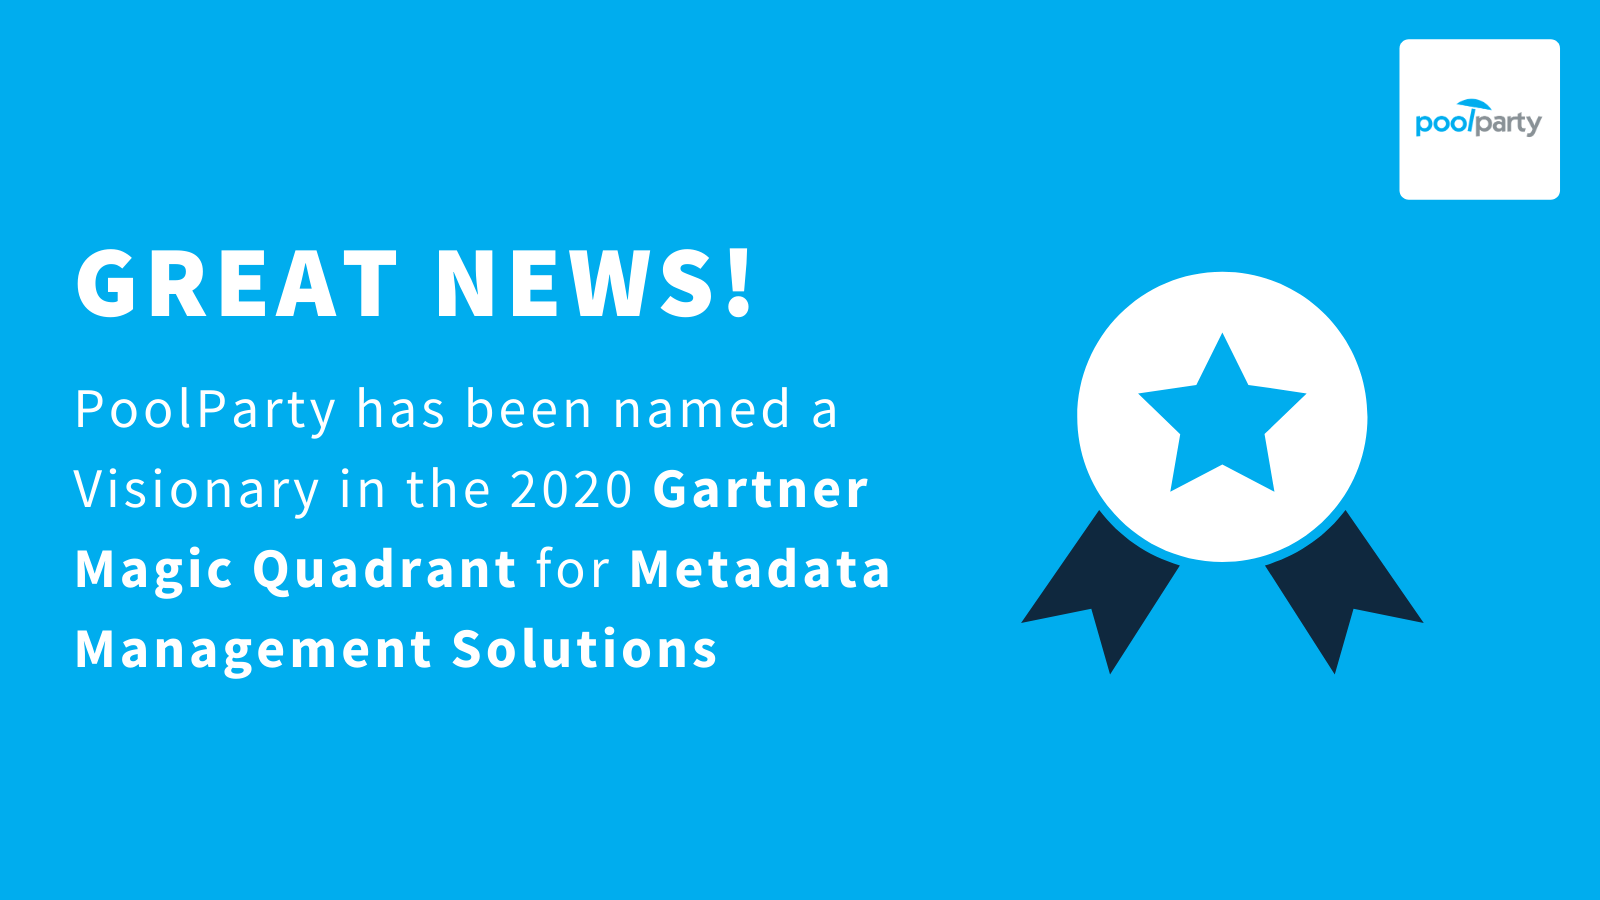 Gartner Names PoolParty as Visionary in 2020 Magic Quadrant for Metadata Management Solutions